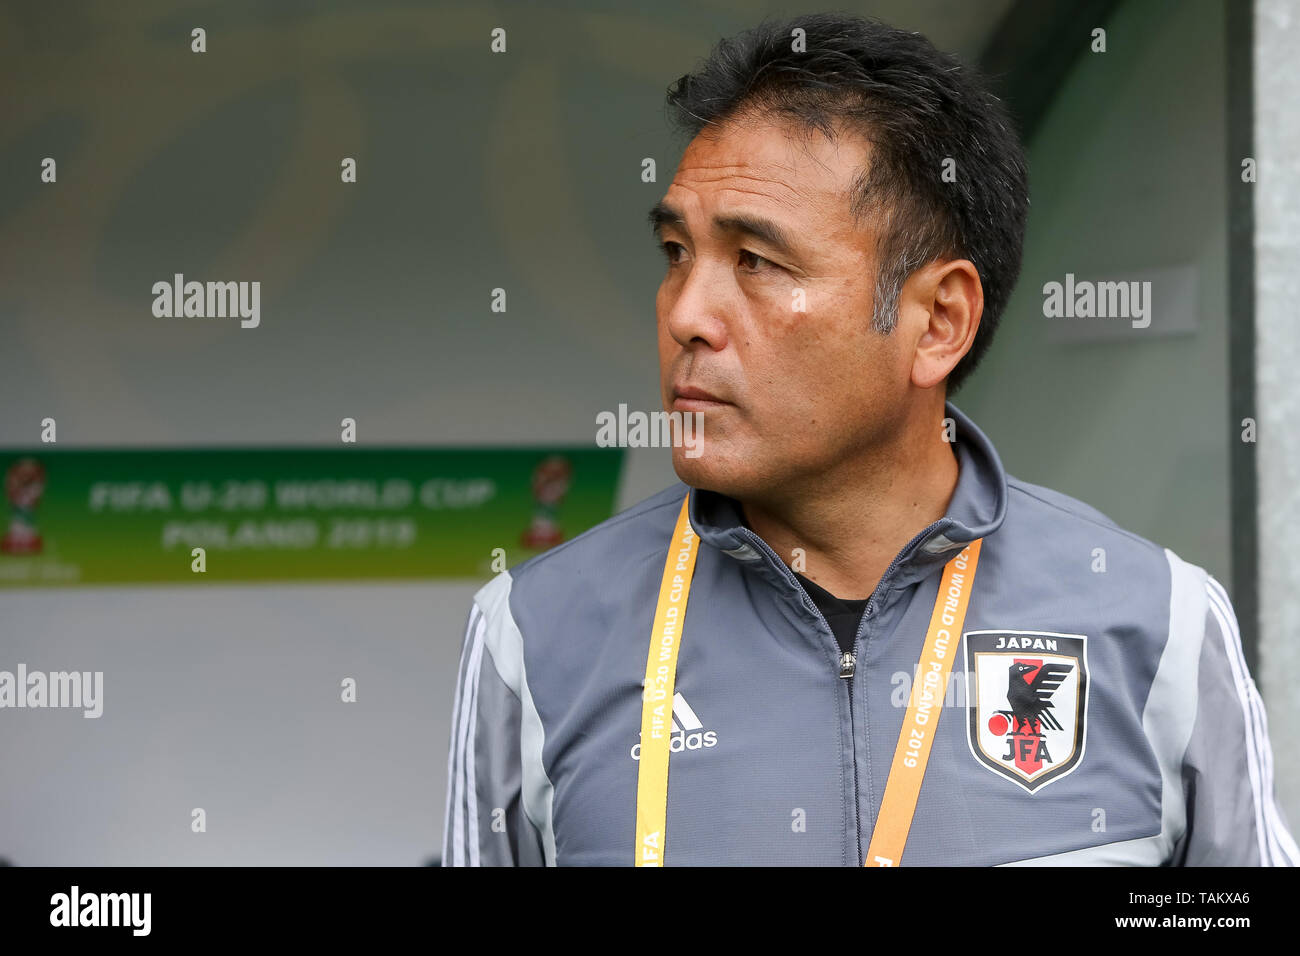 Gdynia Stadium, Gdynia, Poland - 26th May, 2019: Masanaga Kageyama, Head Coach from Japan seen during FIFA U-20 World Cup match between Mexico and Japan (GROUP B) in Gdynia. (Final score; Mexico 0:3 Japan) - Stock Image